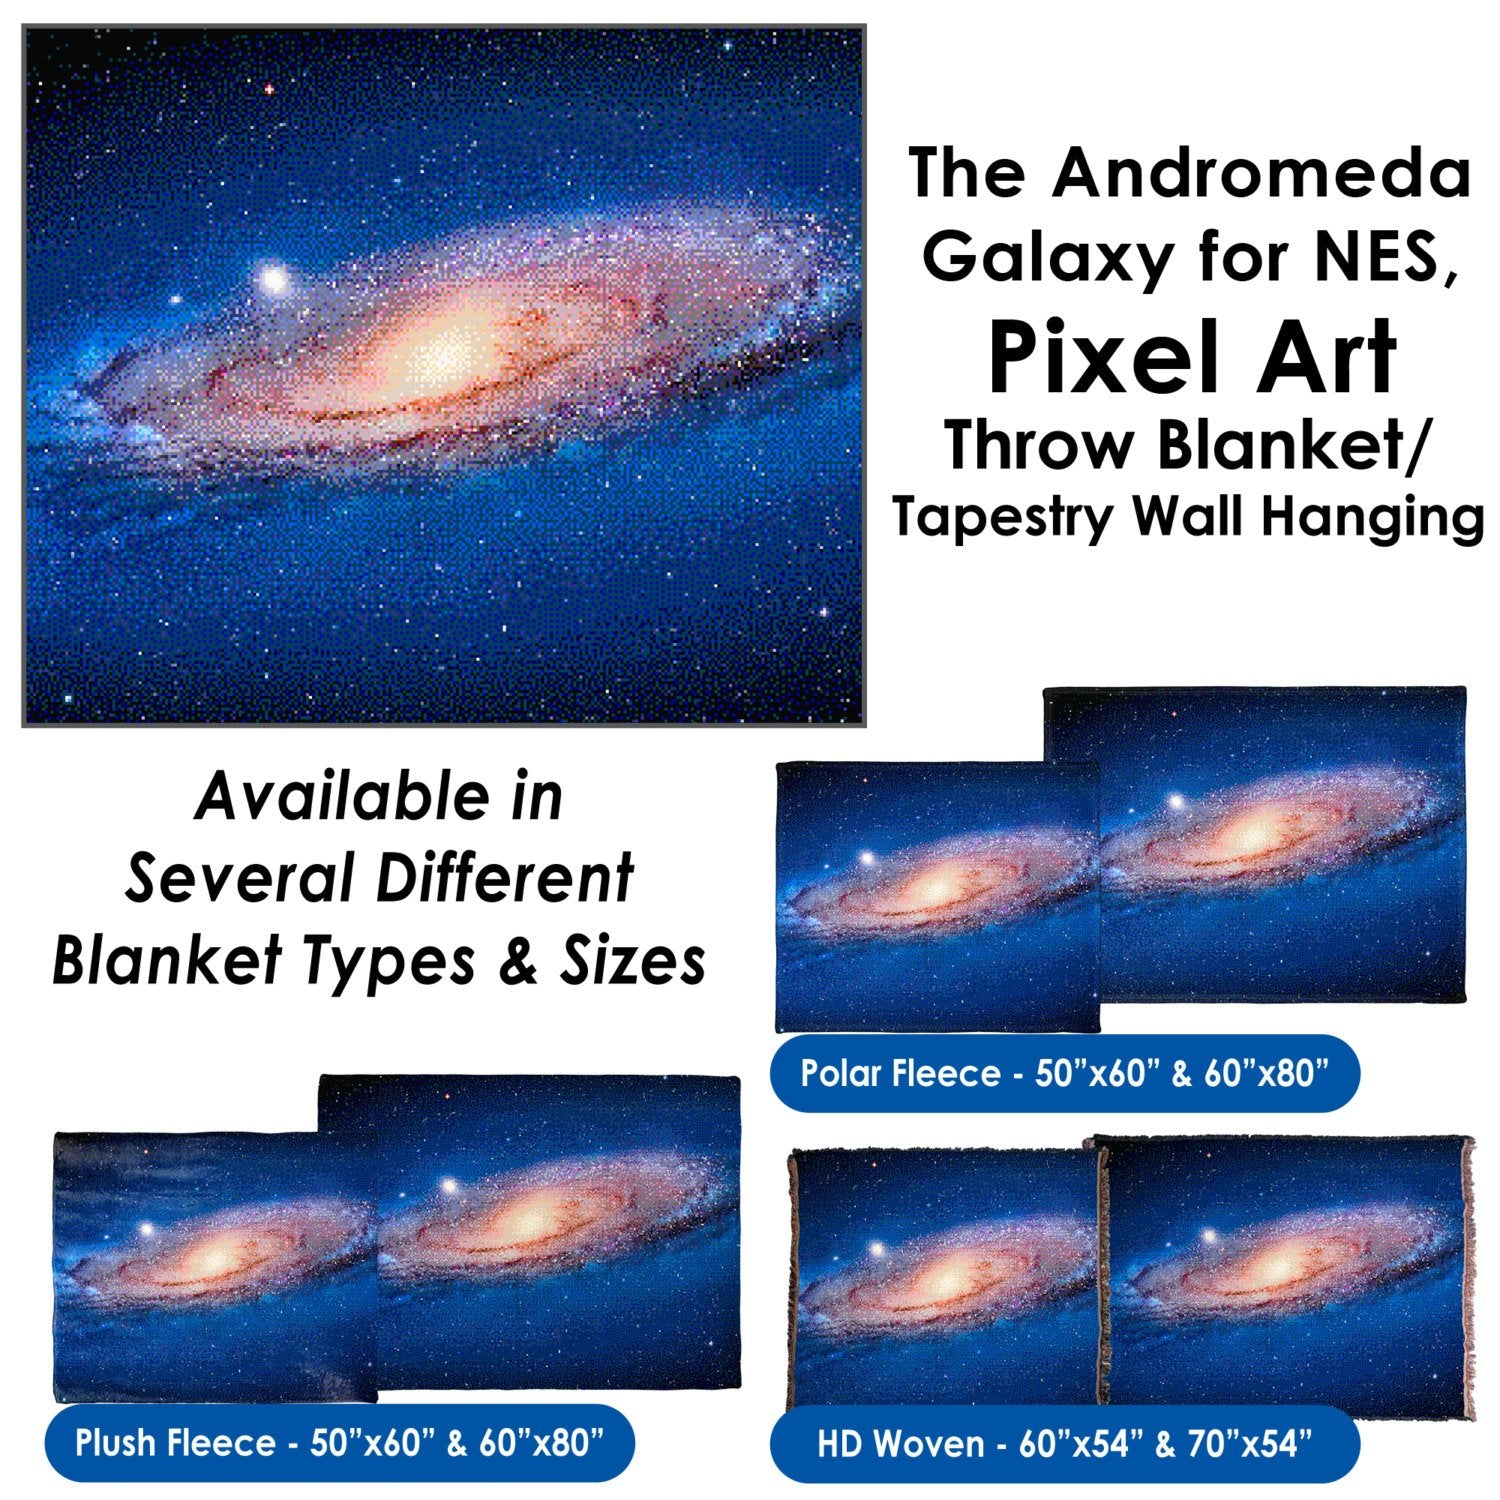 The Andromeda Galaxy for NES, Pixel Art – Throw Blanket / Tapestry Wall Hanging